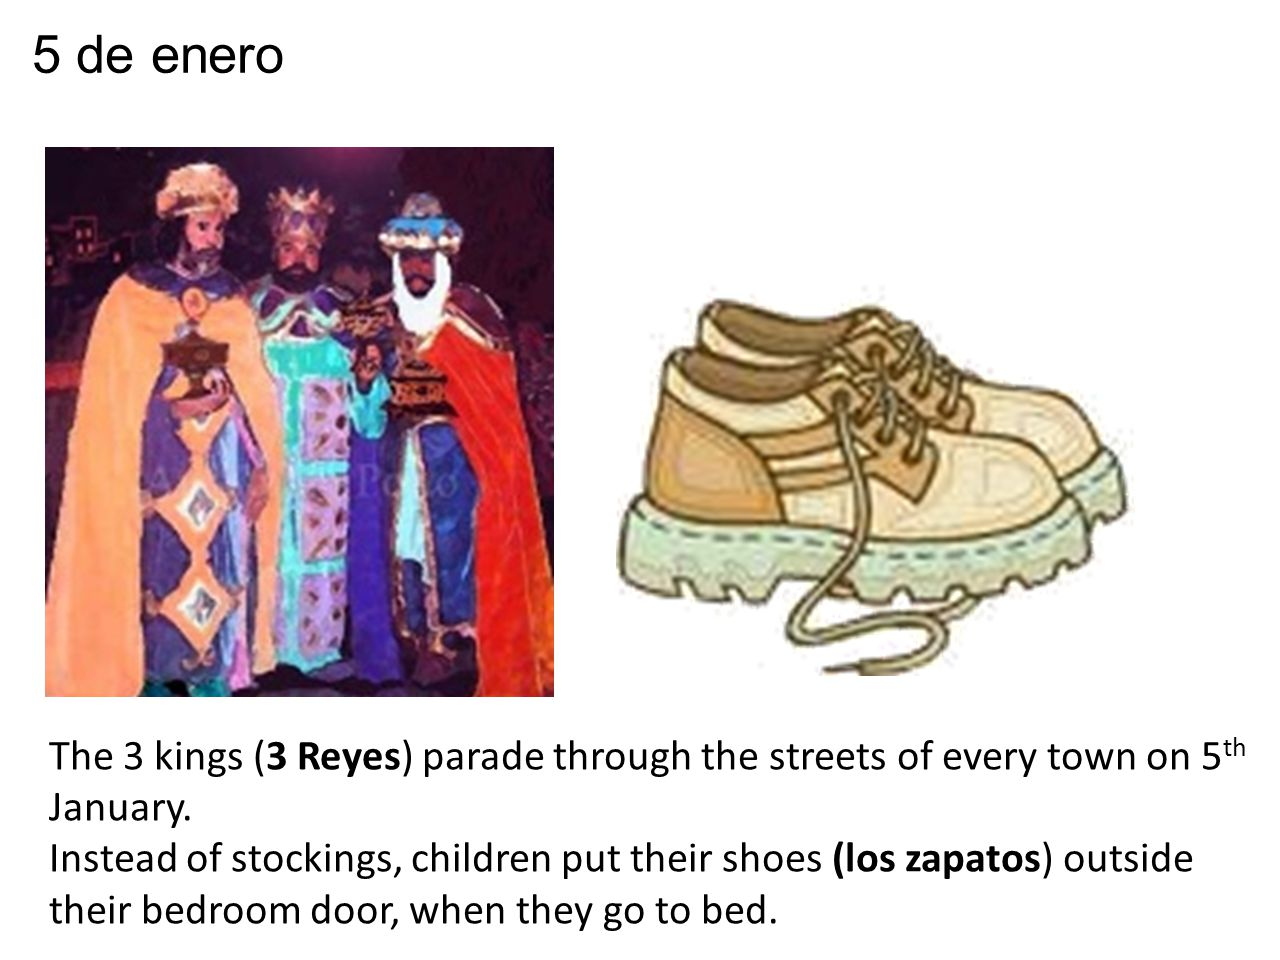 The 3 kings (3 Reyes) parade through the streets of every town on 5 th January.